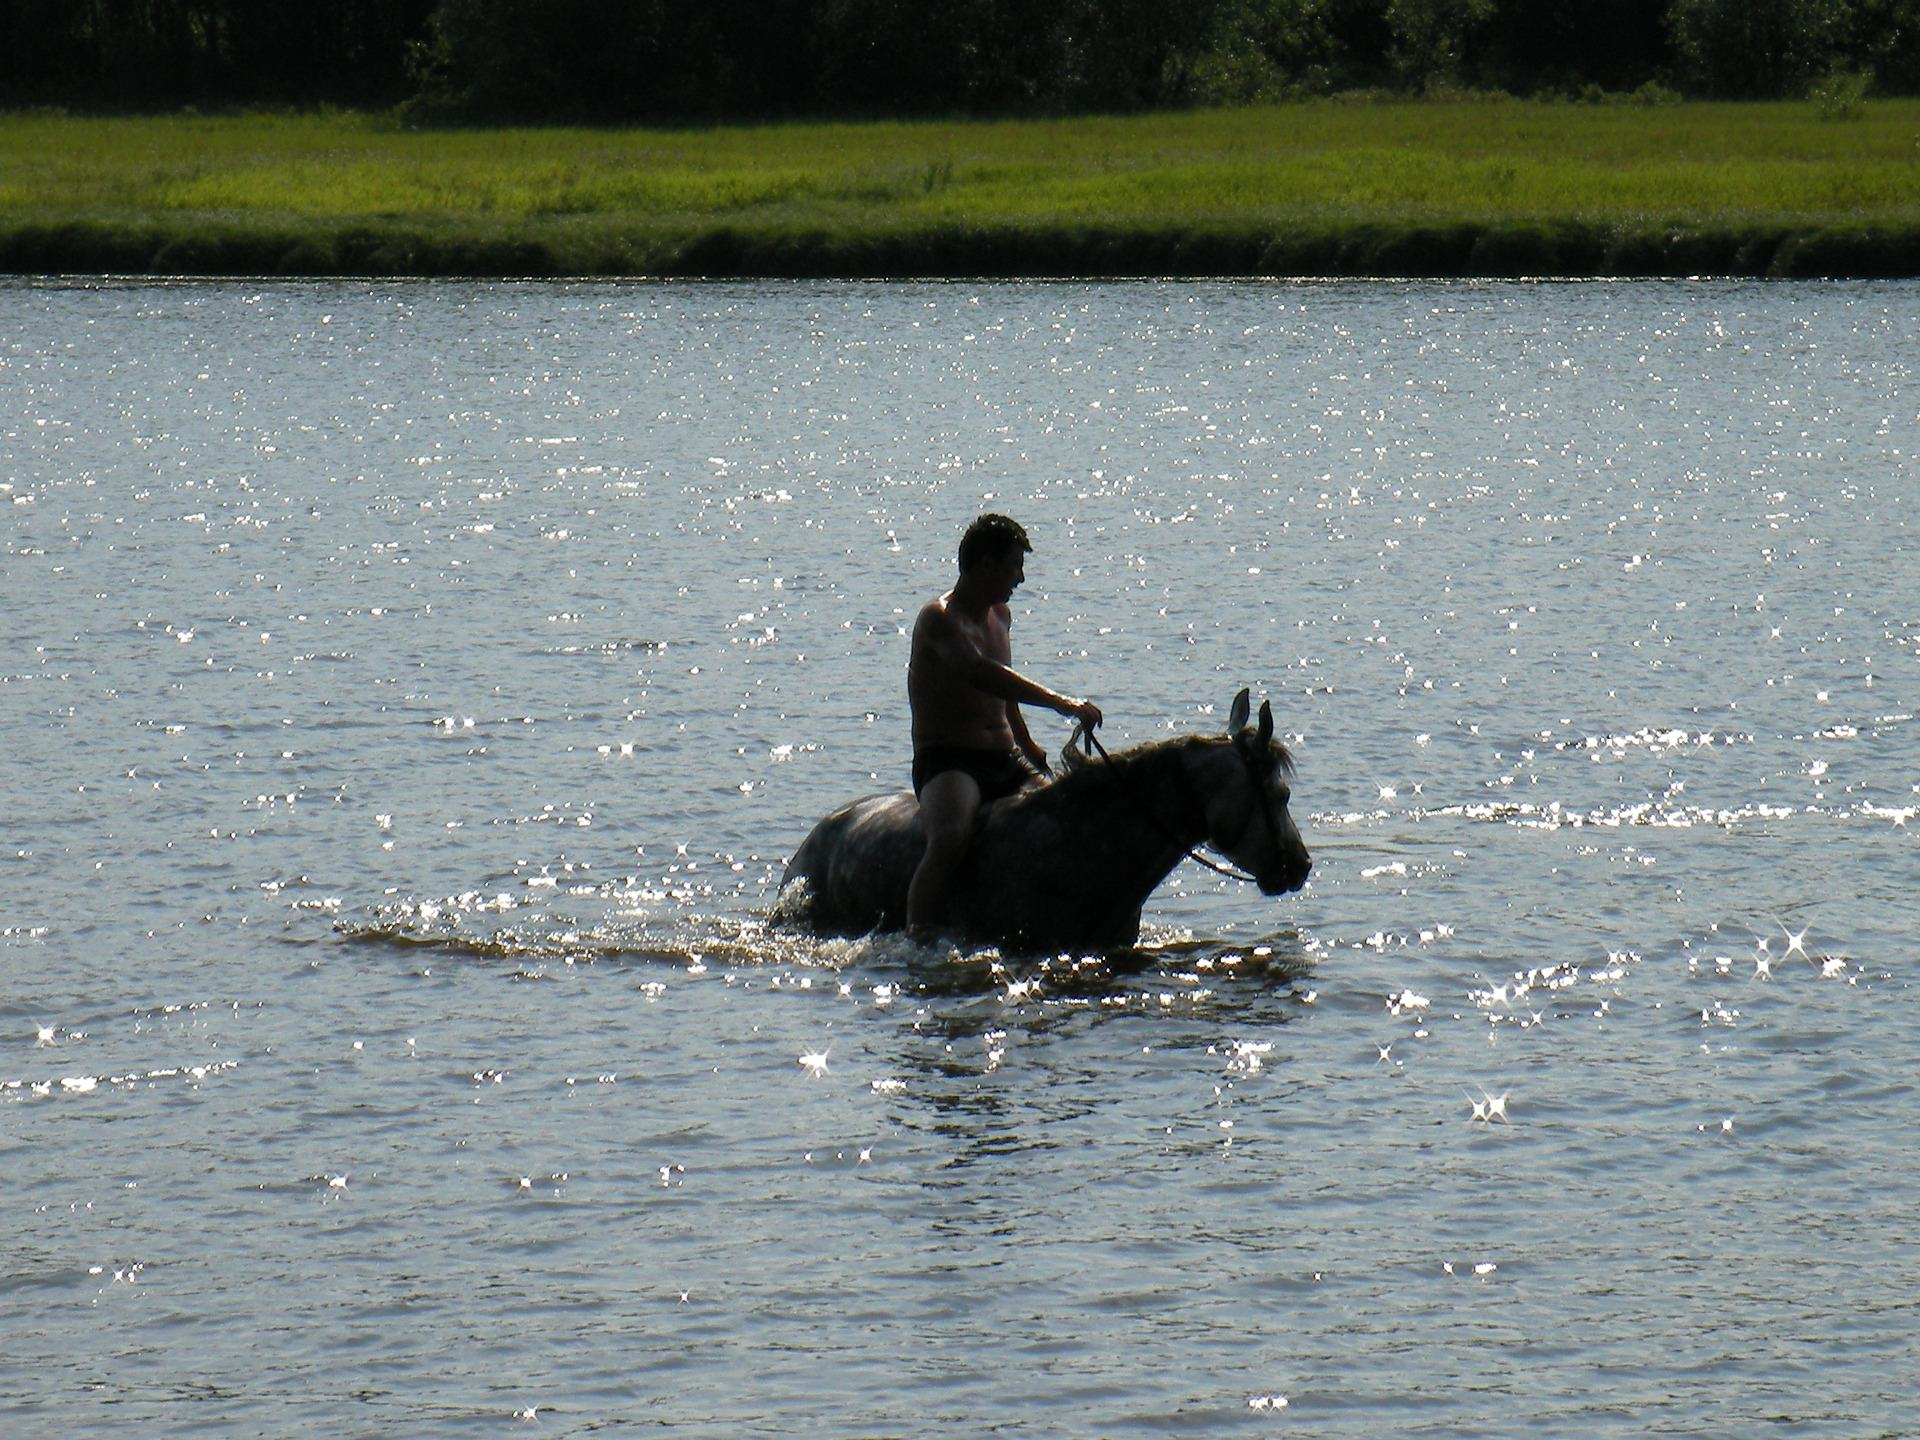 Man on a horse in water